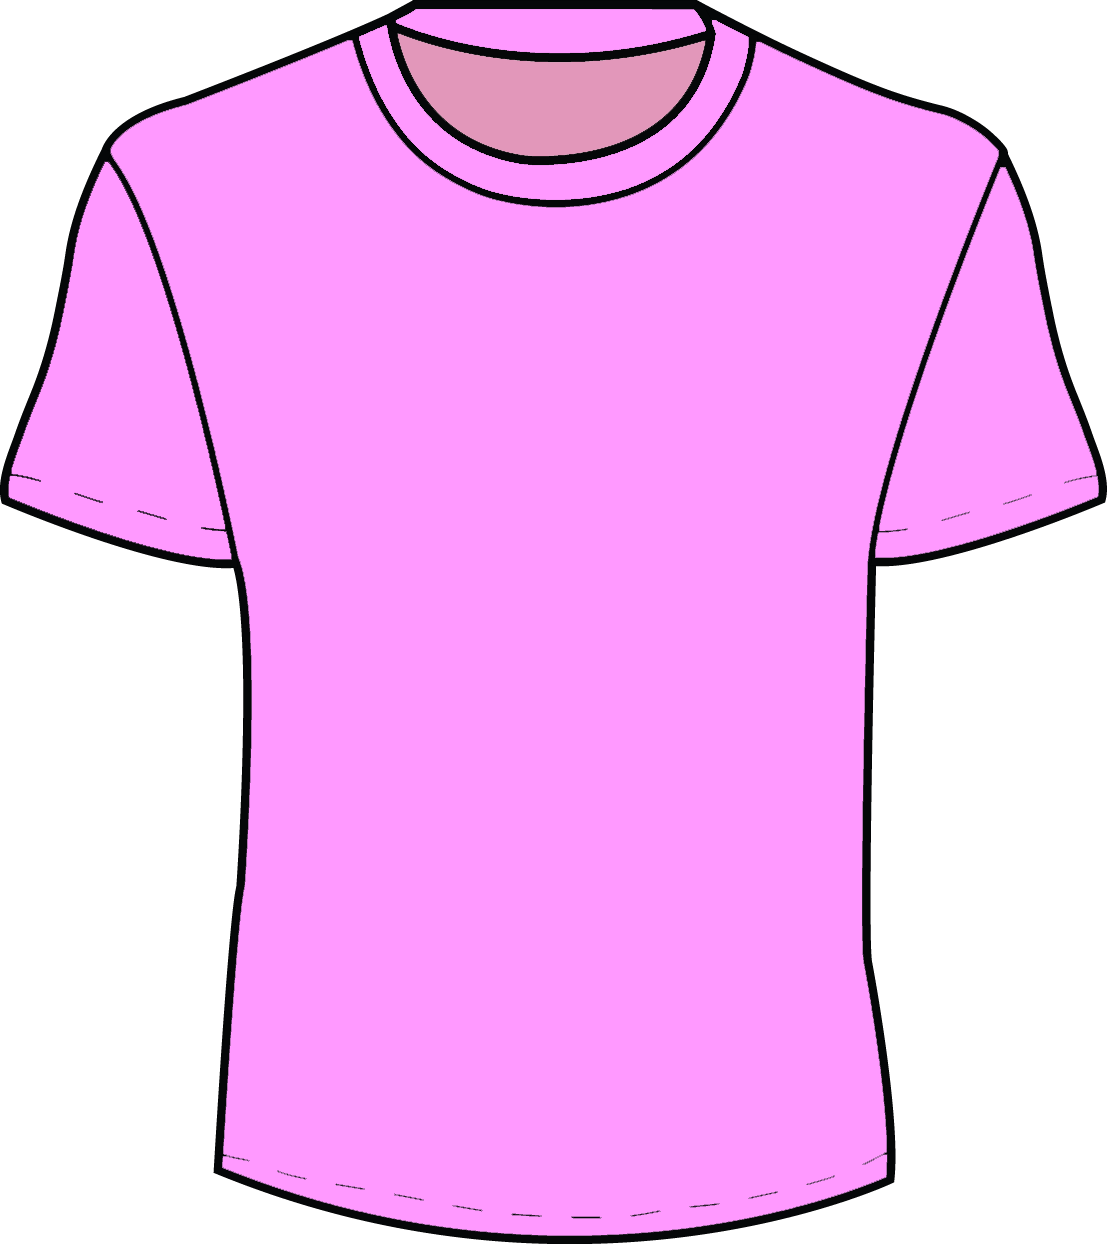 Outline Of A T Shirt Template.